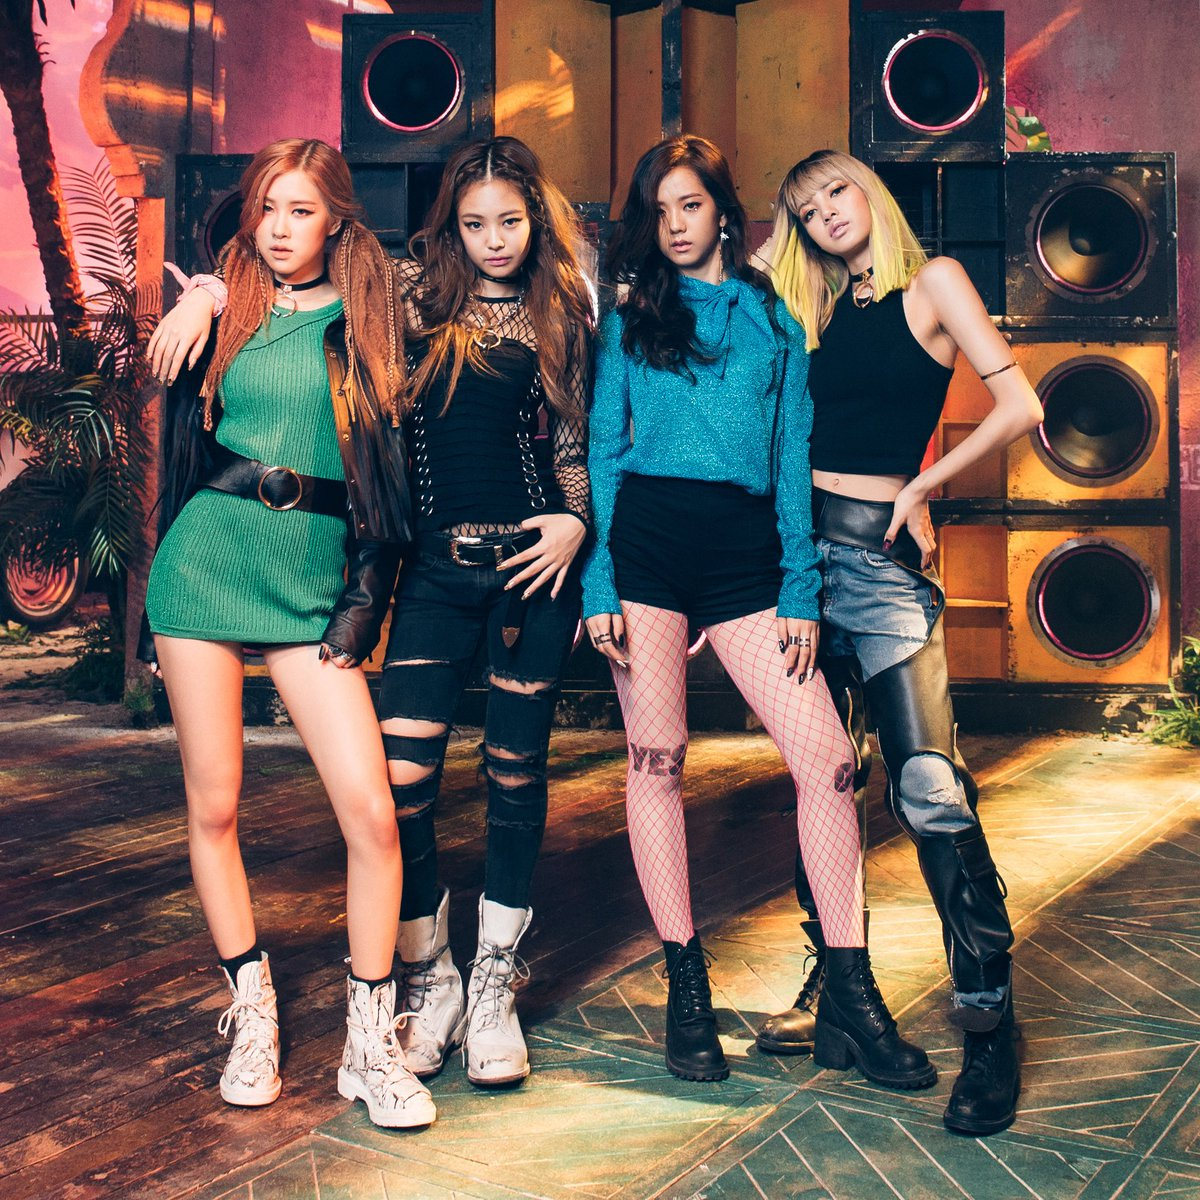 BLACKPINK Tops Charts With Debut Tracks